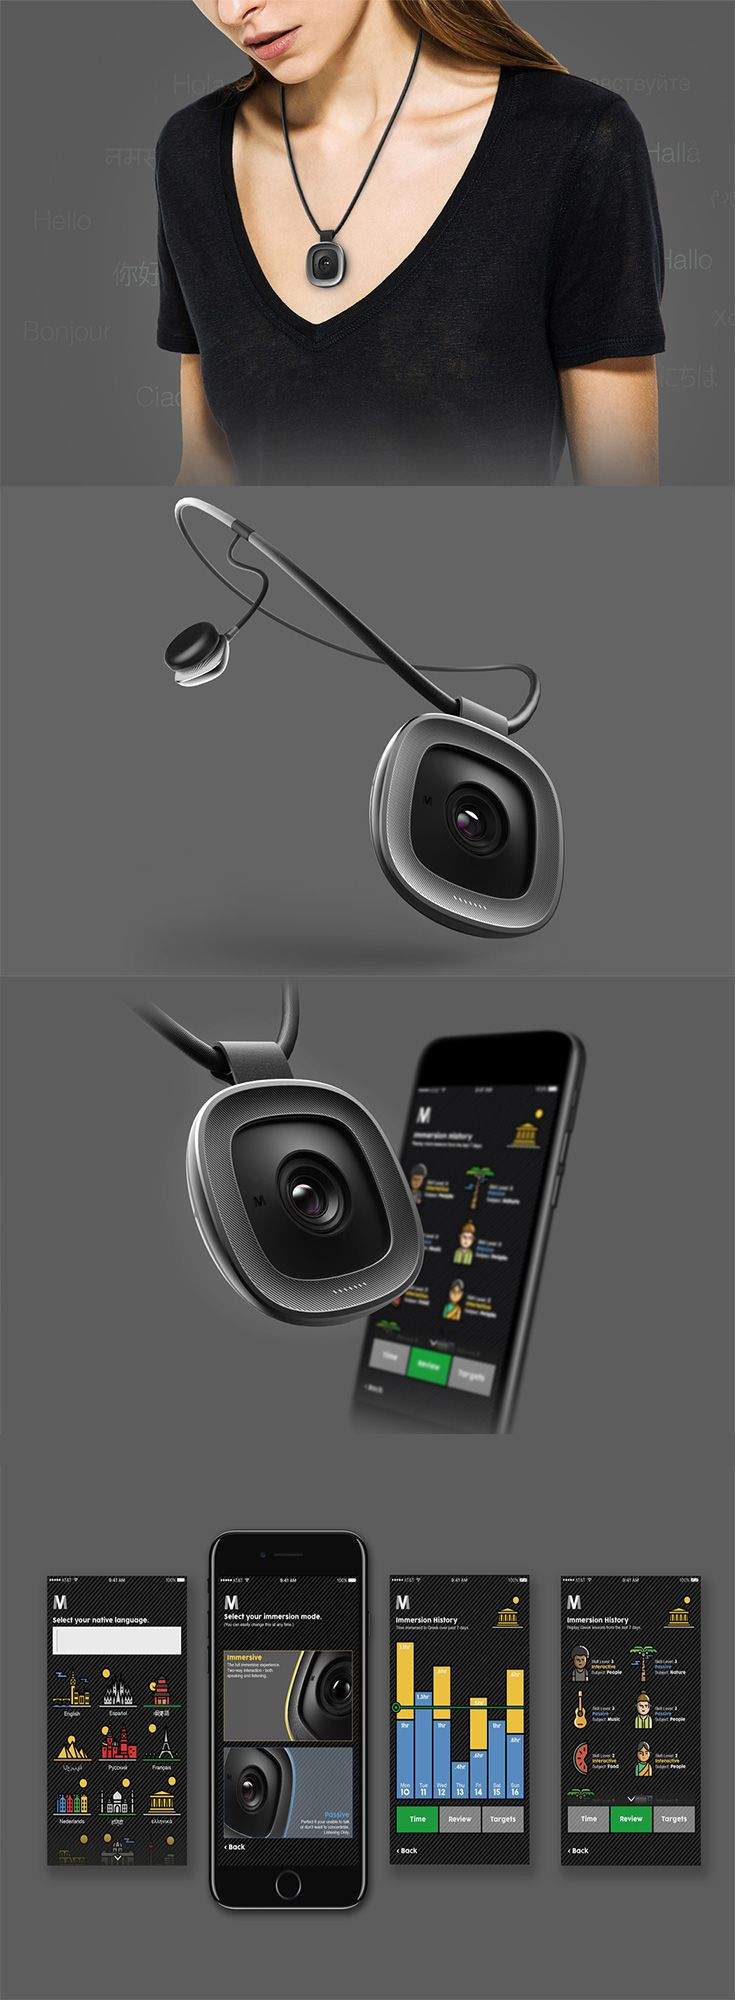 'Mersiv' is a modern language-learning device that brings the type of immersive learning to you, wherever you are, it utilizes a camera, microphone and headphones to identify and tailor unique micro language lessons directly reliant to the user in that moment... READ MORE at Yanko Design !